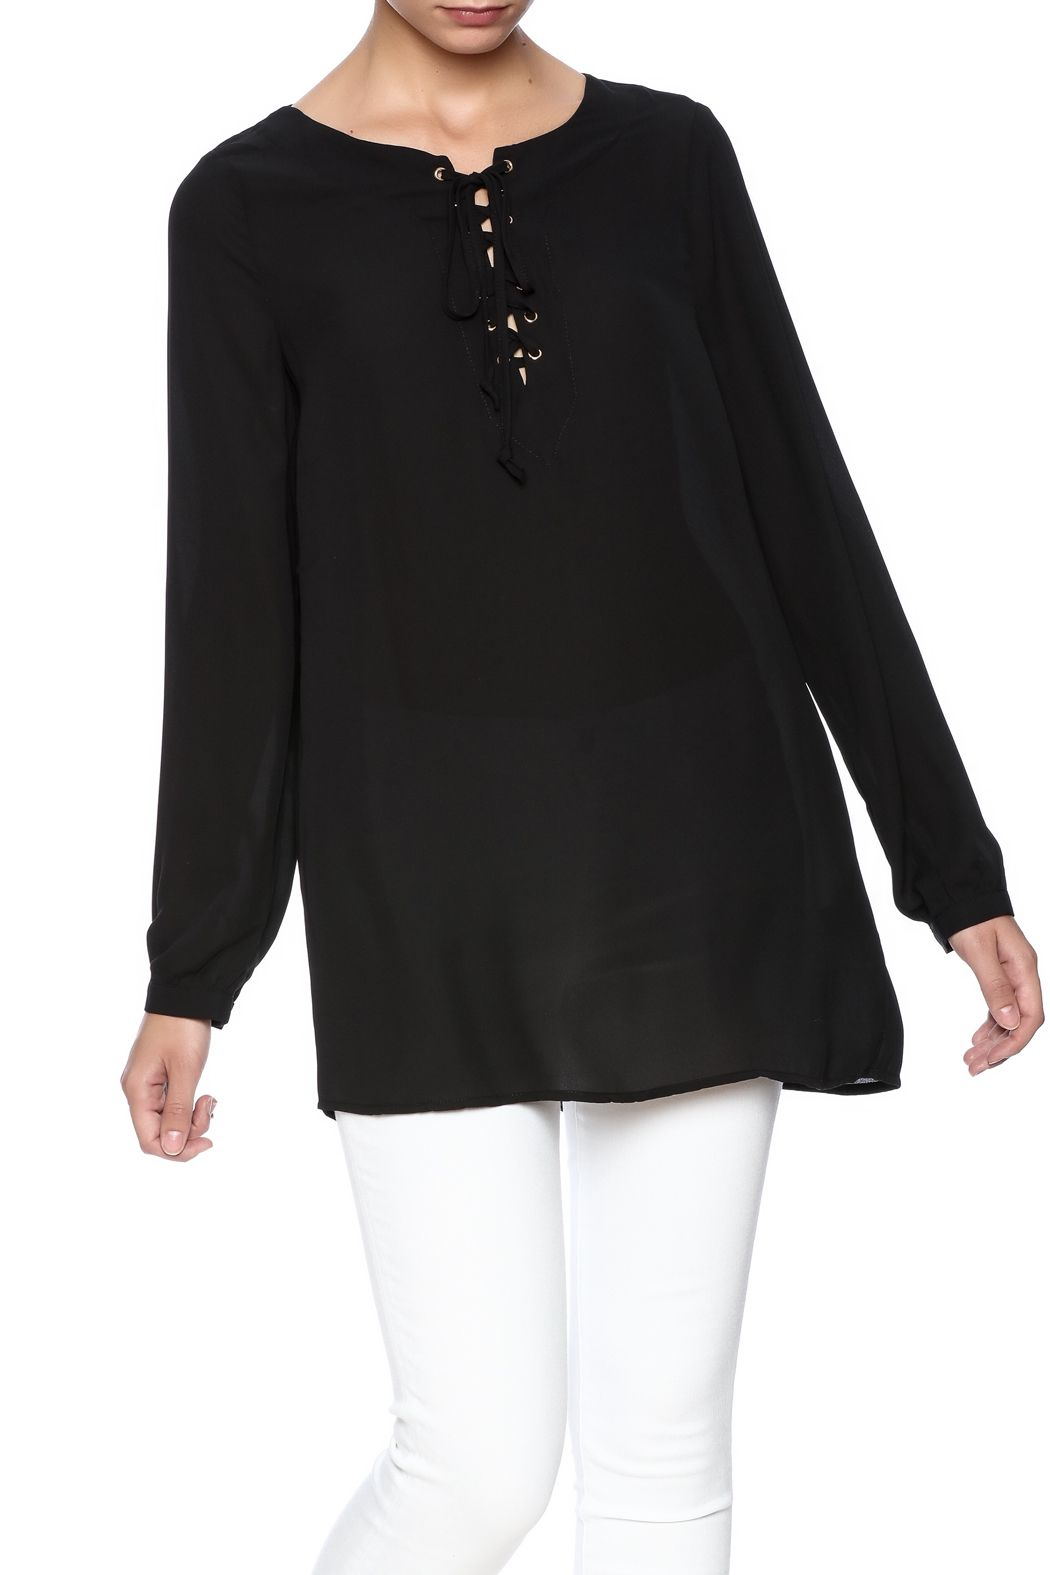 3049dde43e5 Lace Up Blouse by Staccato. Clothing - Tops - Long Sleeve Clothing - Tops -  Blouses   Shirts New Jersey